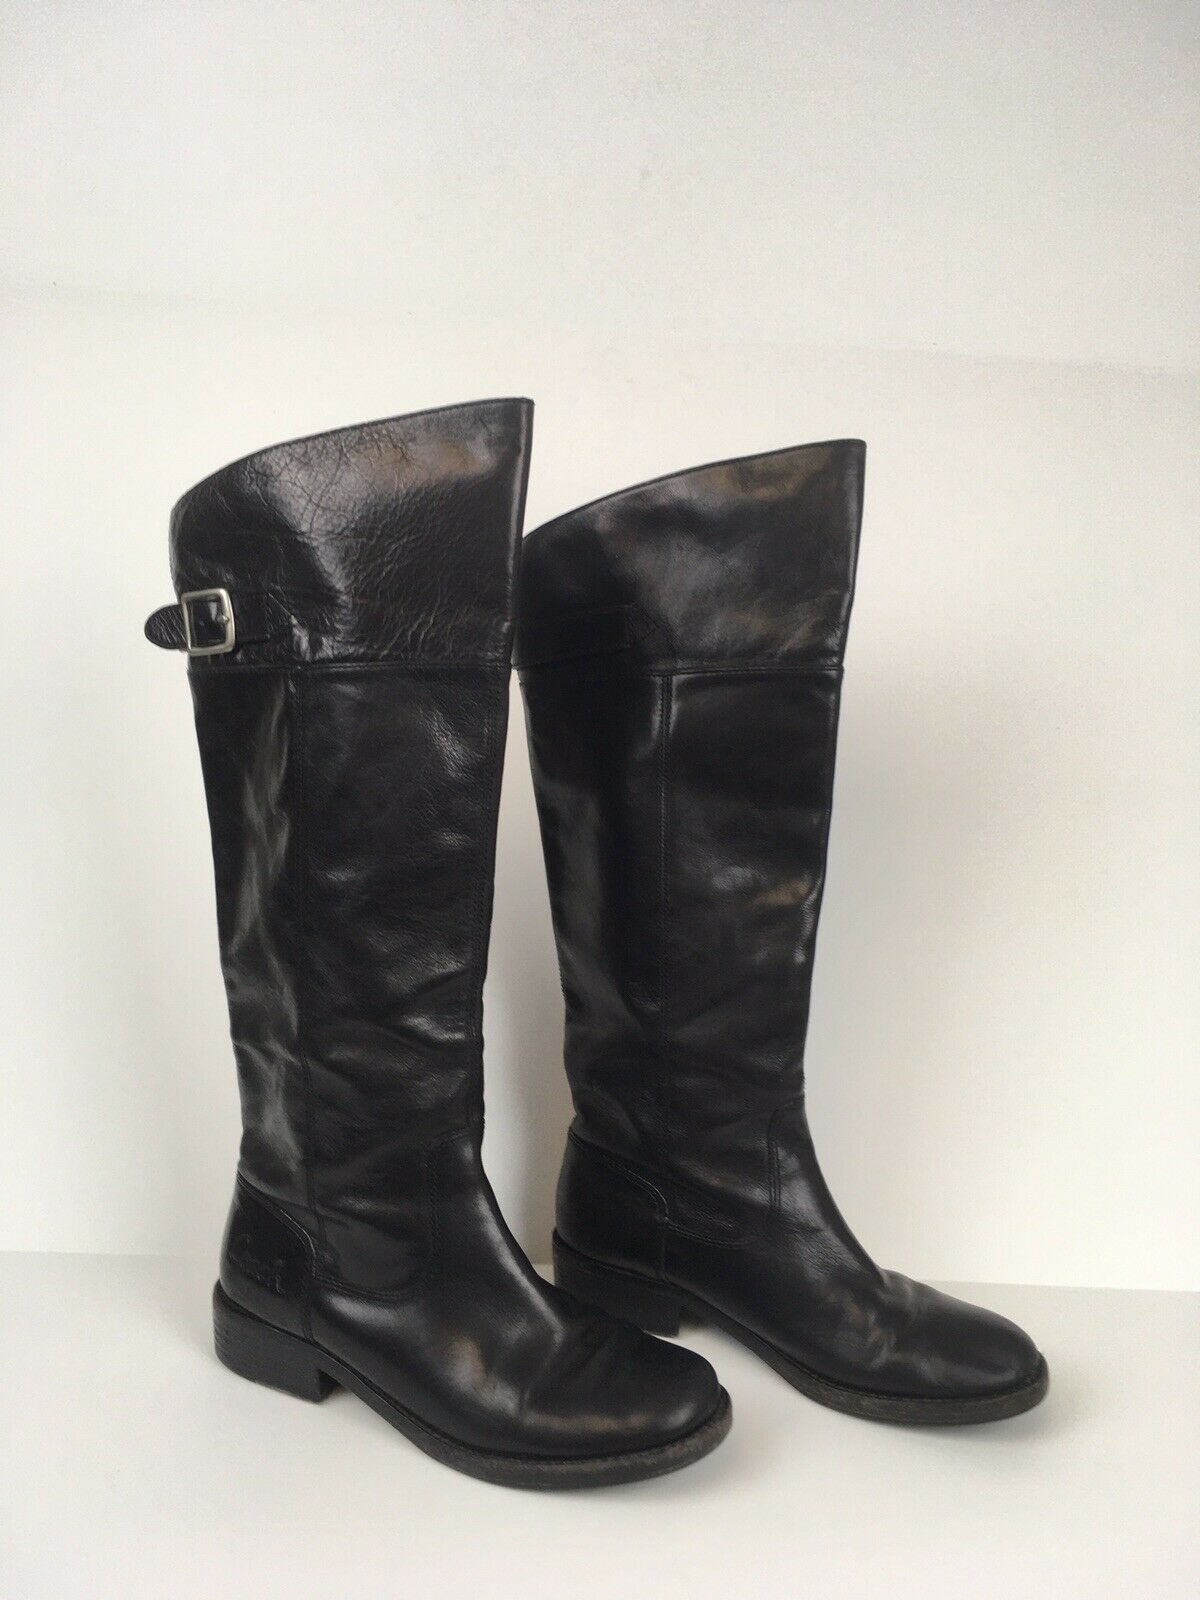 Coach Joele Black Leather Knee High Pull On Boots Women's Size 7B